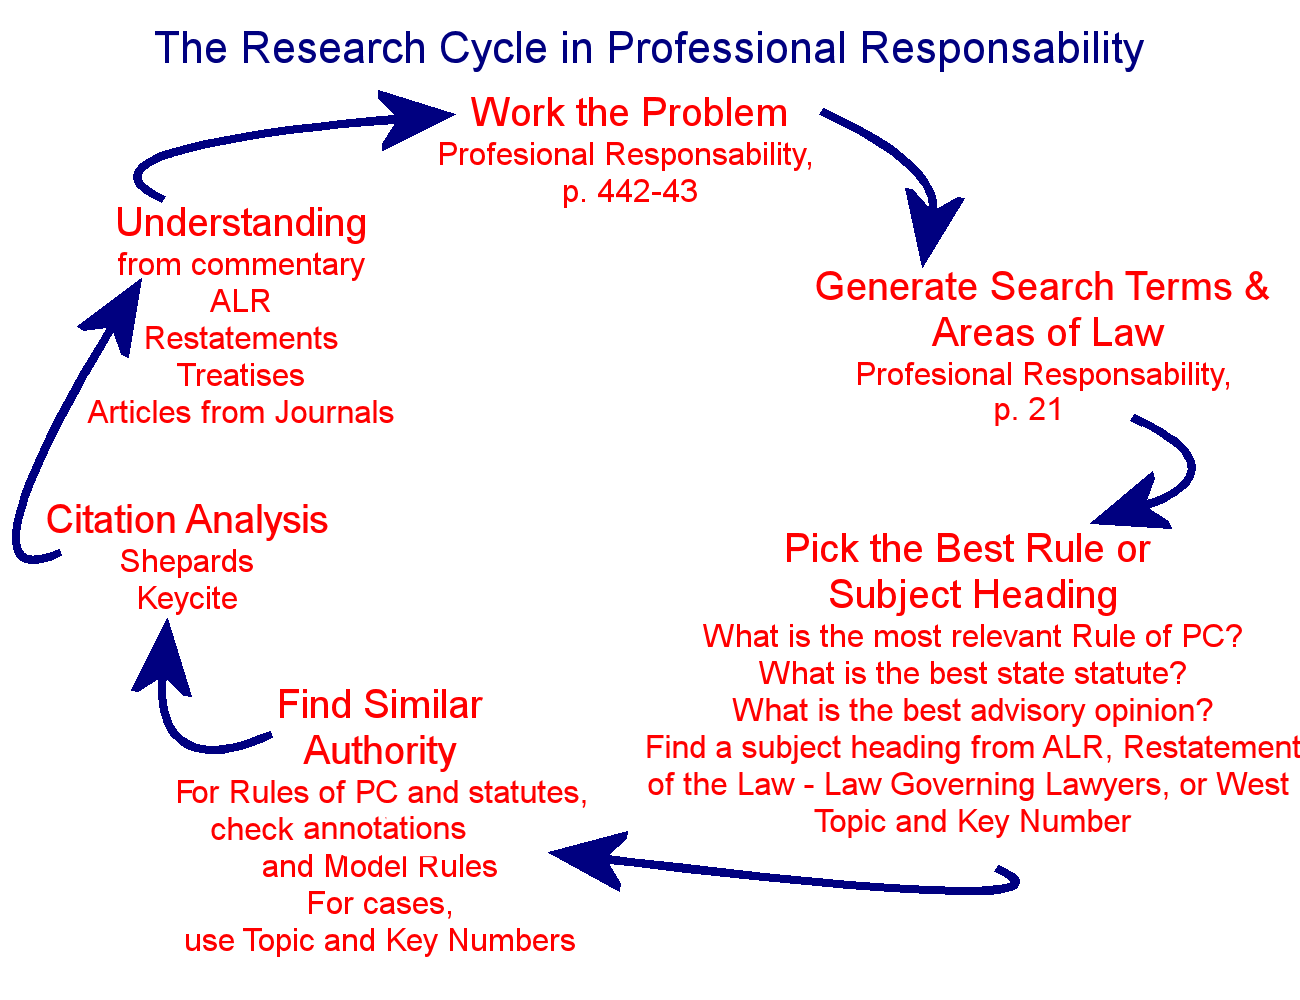 Outline of research cycle for PR